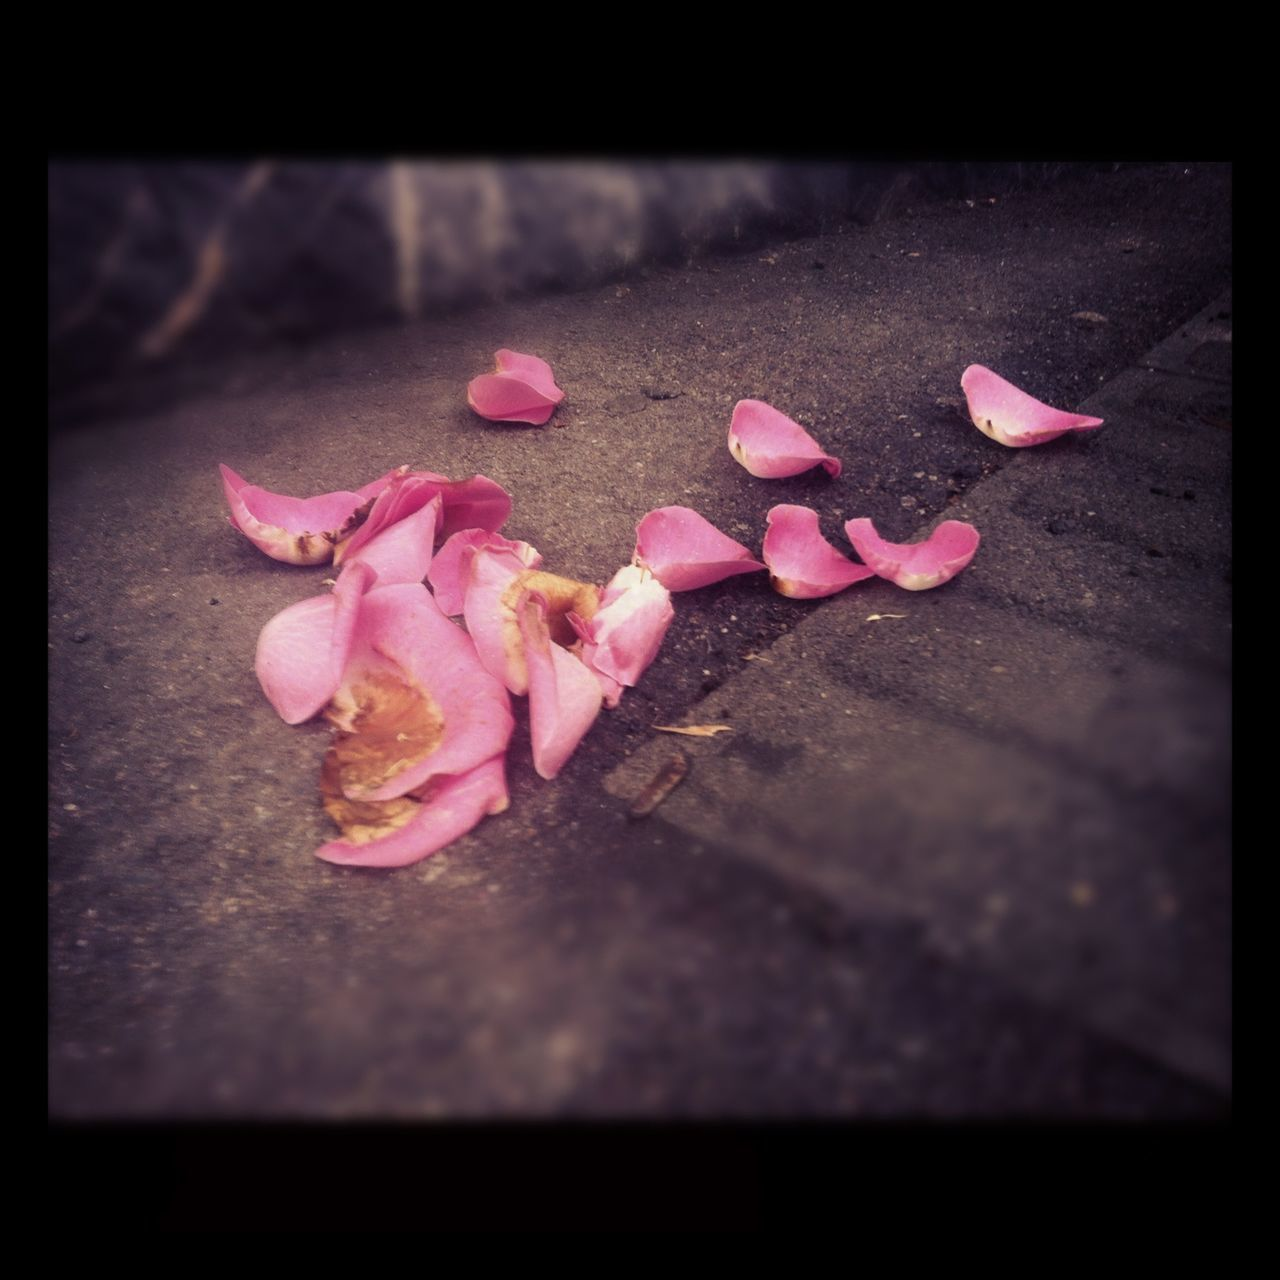 pink color, petal, flower, selective focus, no people, rose - flower, fragility, close-up, freshness, day, nature, rose petals, outdoors, beauty in nature, flower head